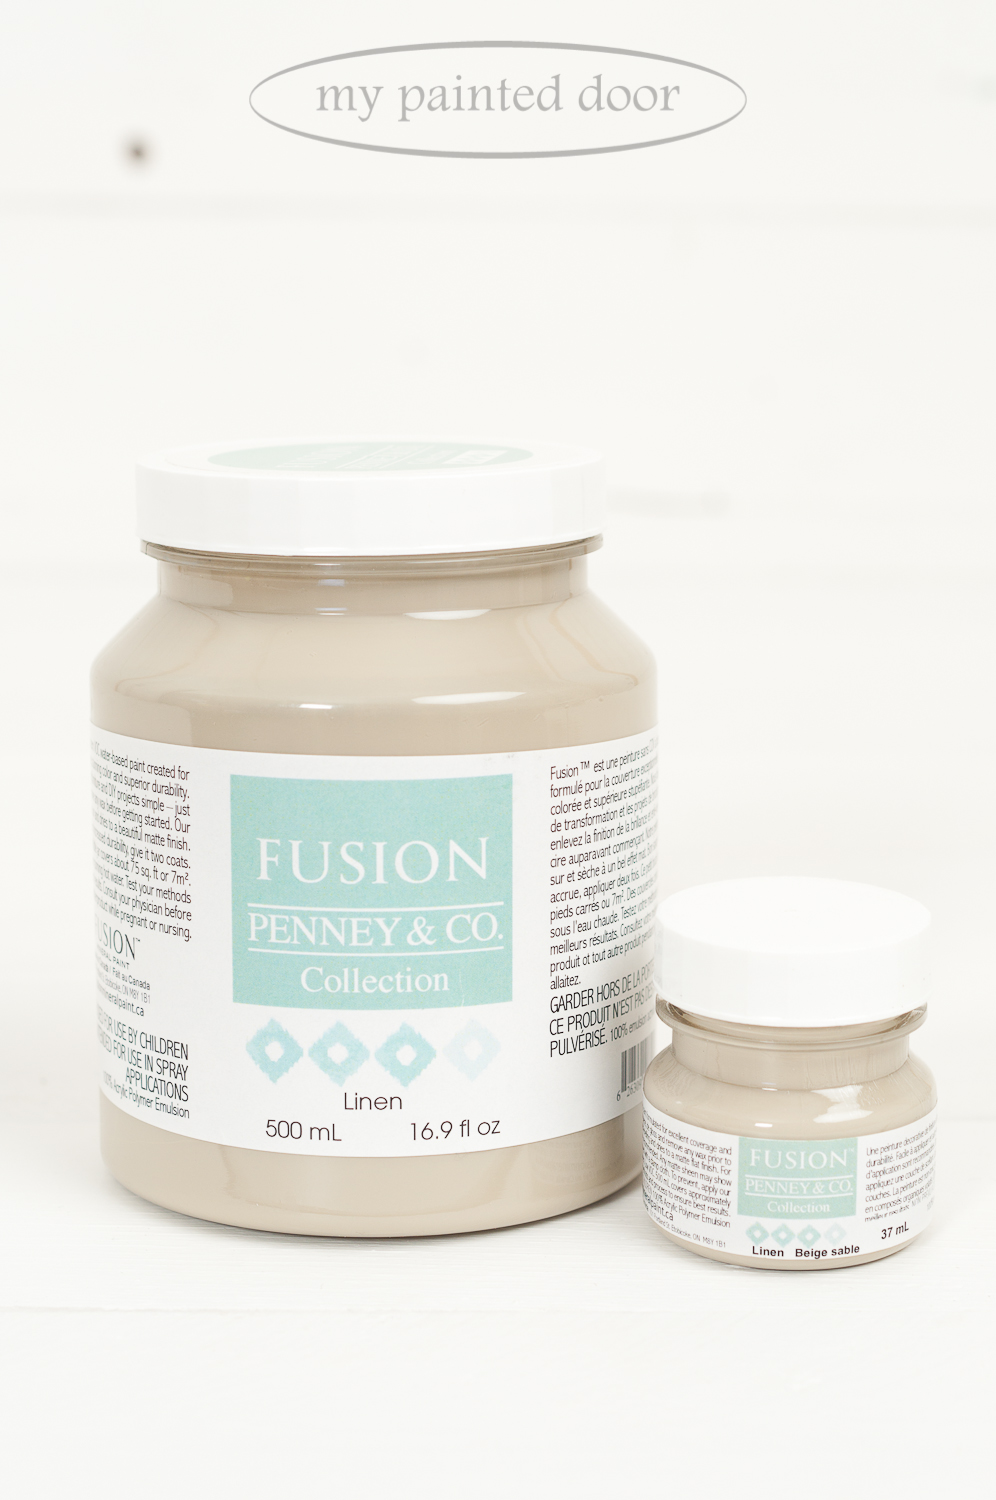 Fusion Mineral Paint in the colour Linen